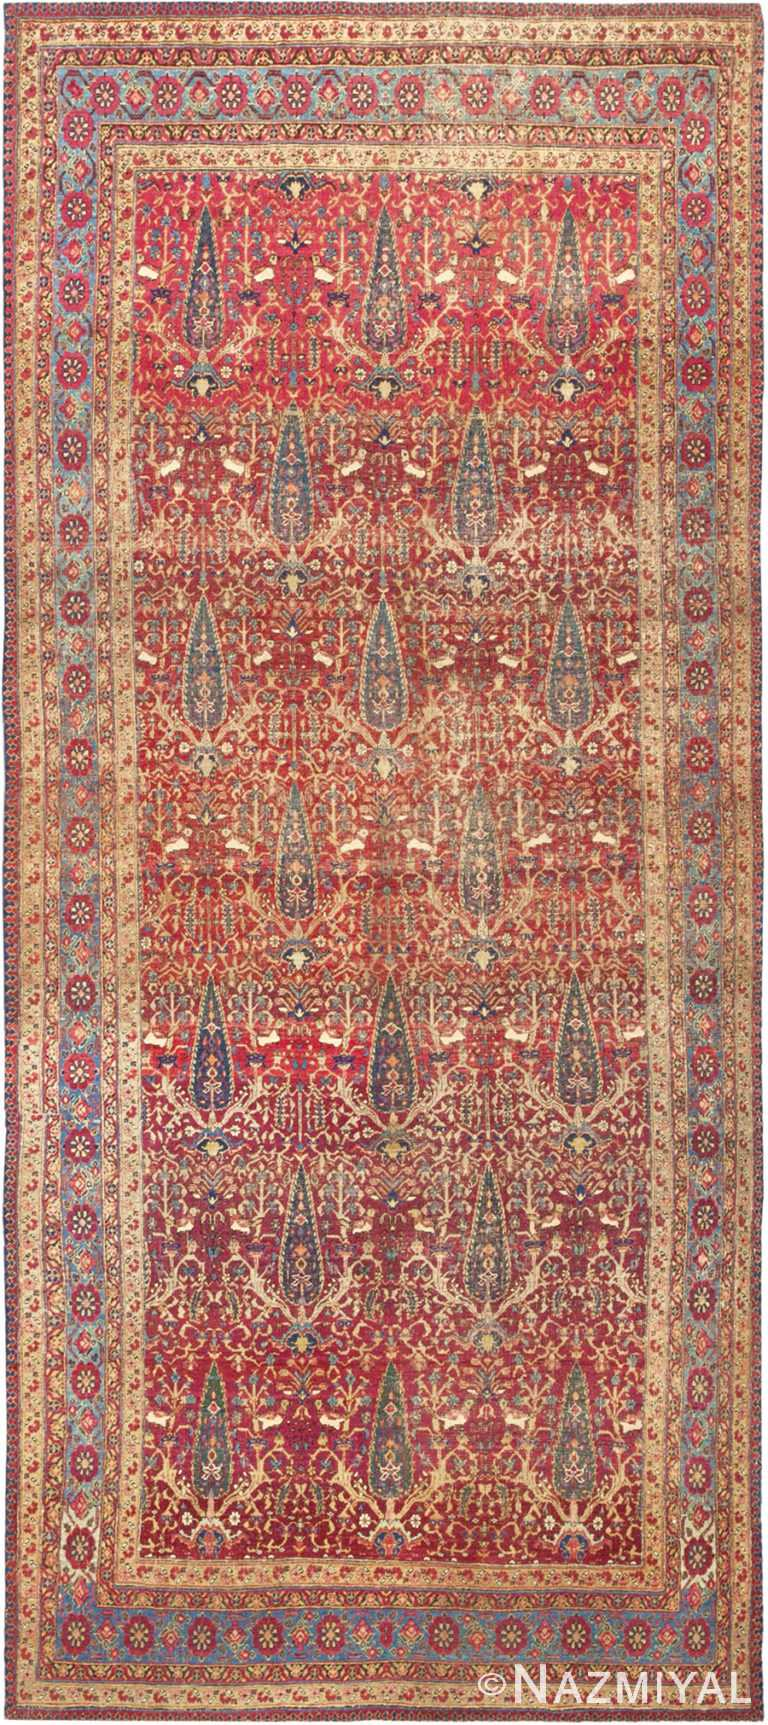 Antique Persian Kerman Cypress Tree Rug #46637 by Nazmiyal Antique Rugs